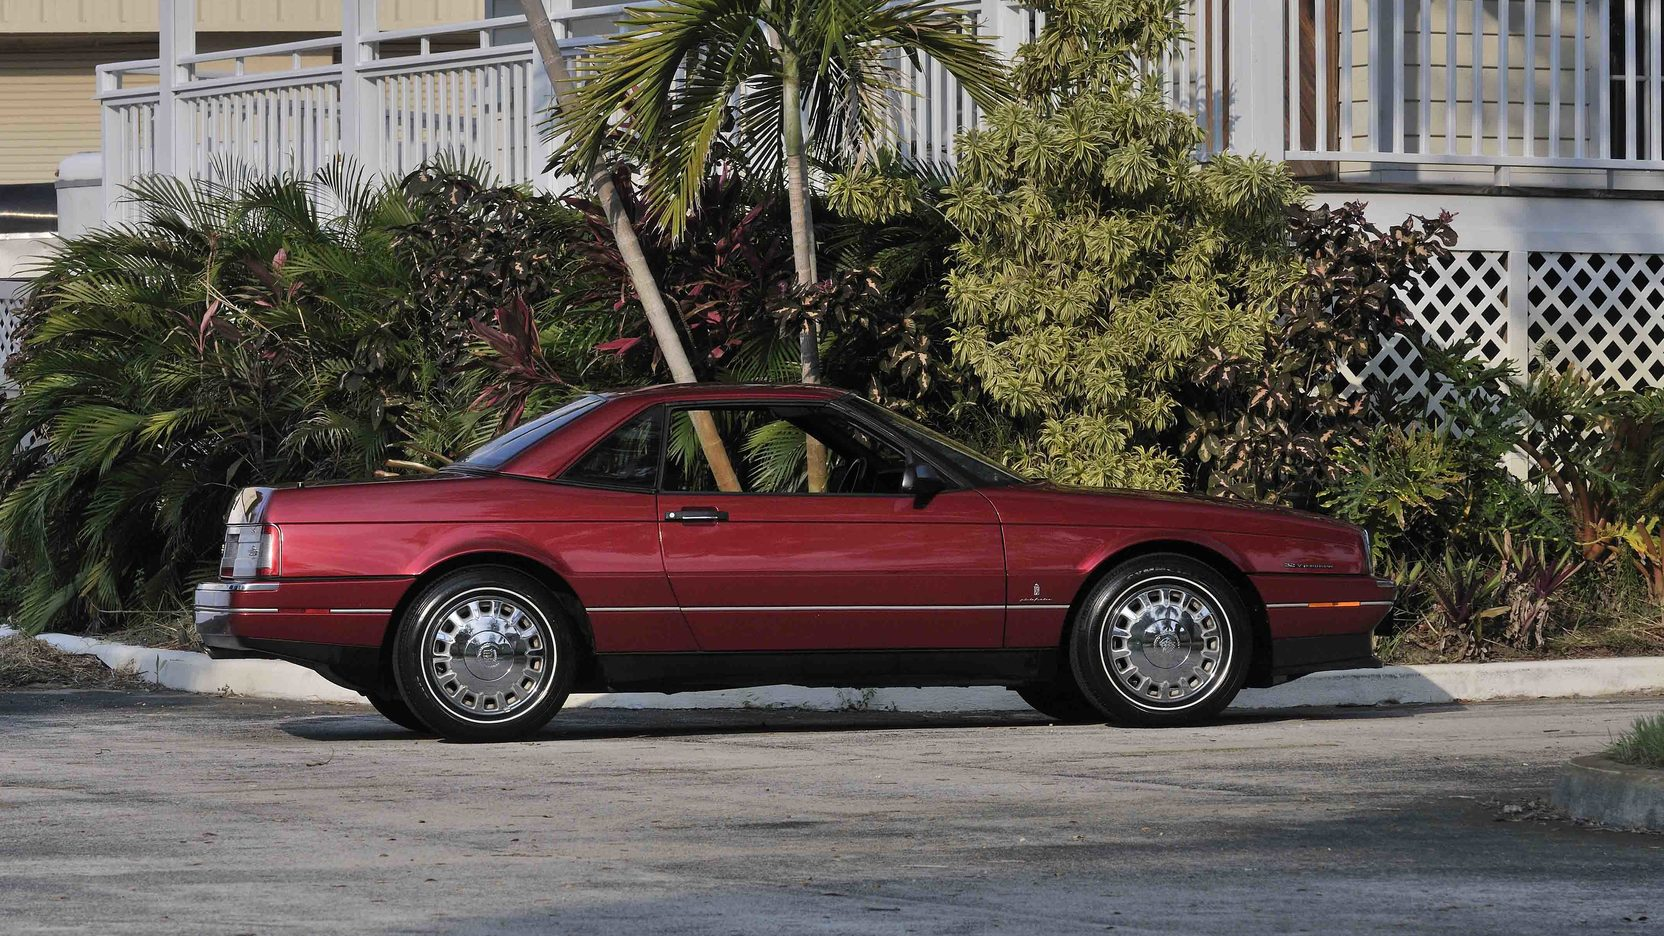 1993 Cadillac Allante side profile